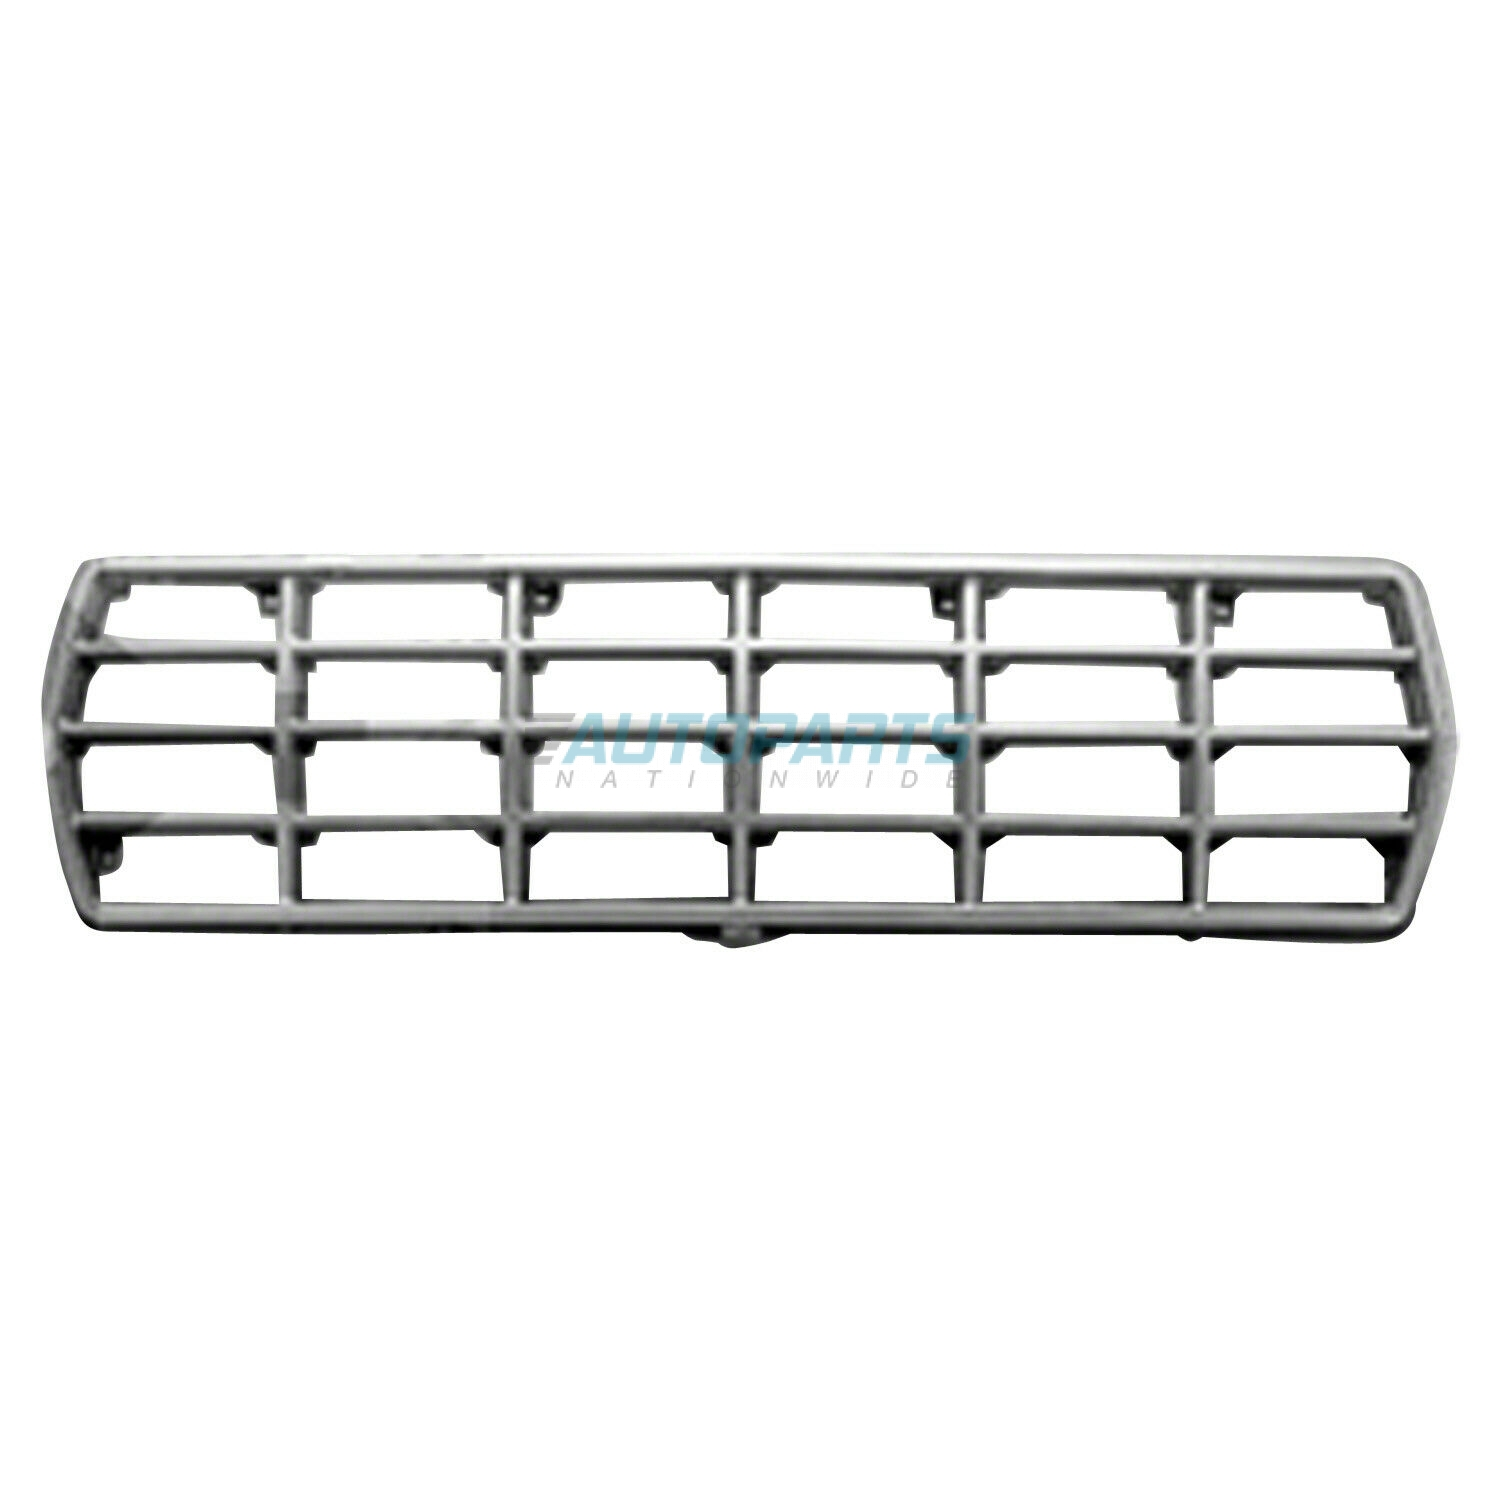 NEW FRONT GRILLE SILVER FITS 1978-1979 FORD BRONCO F-100